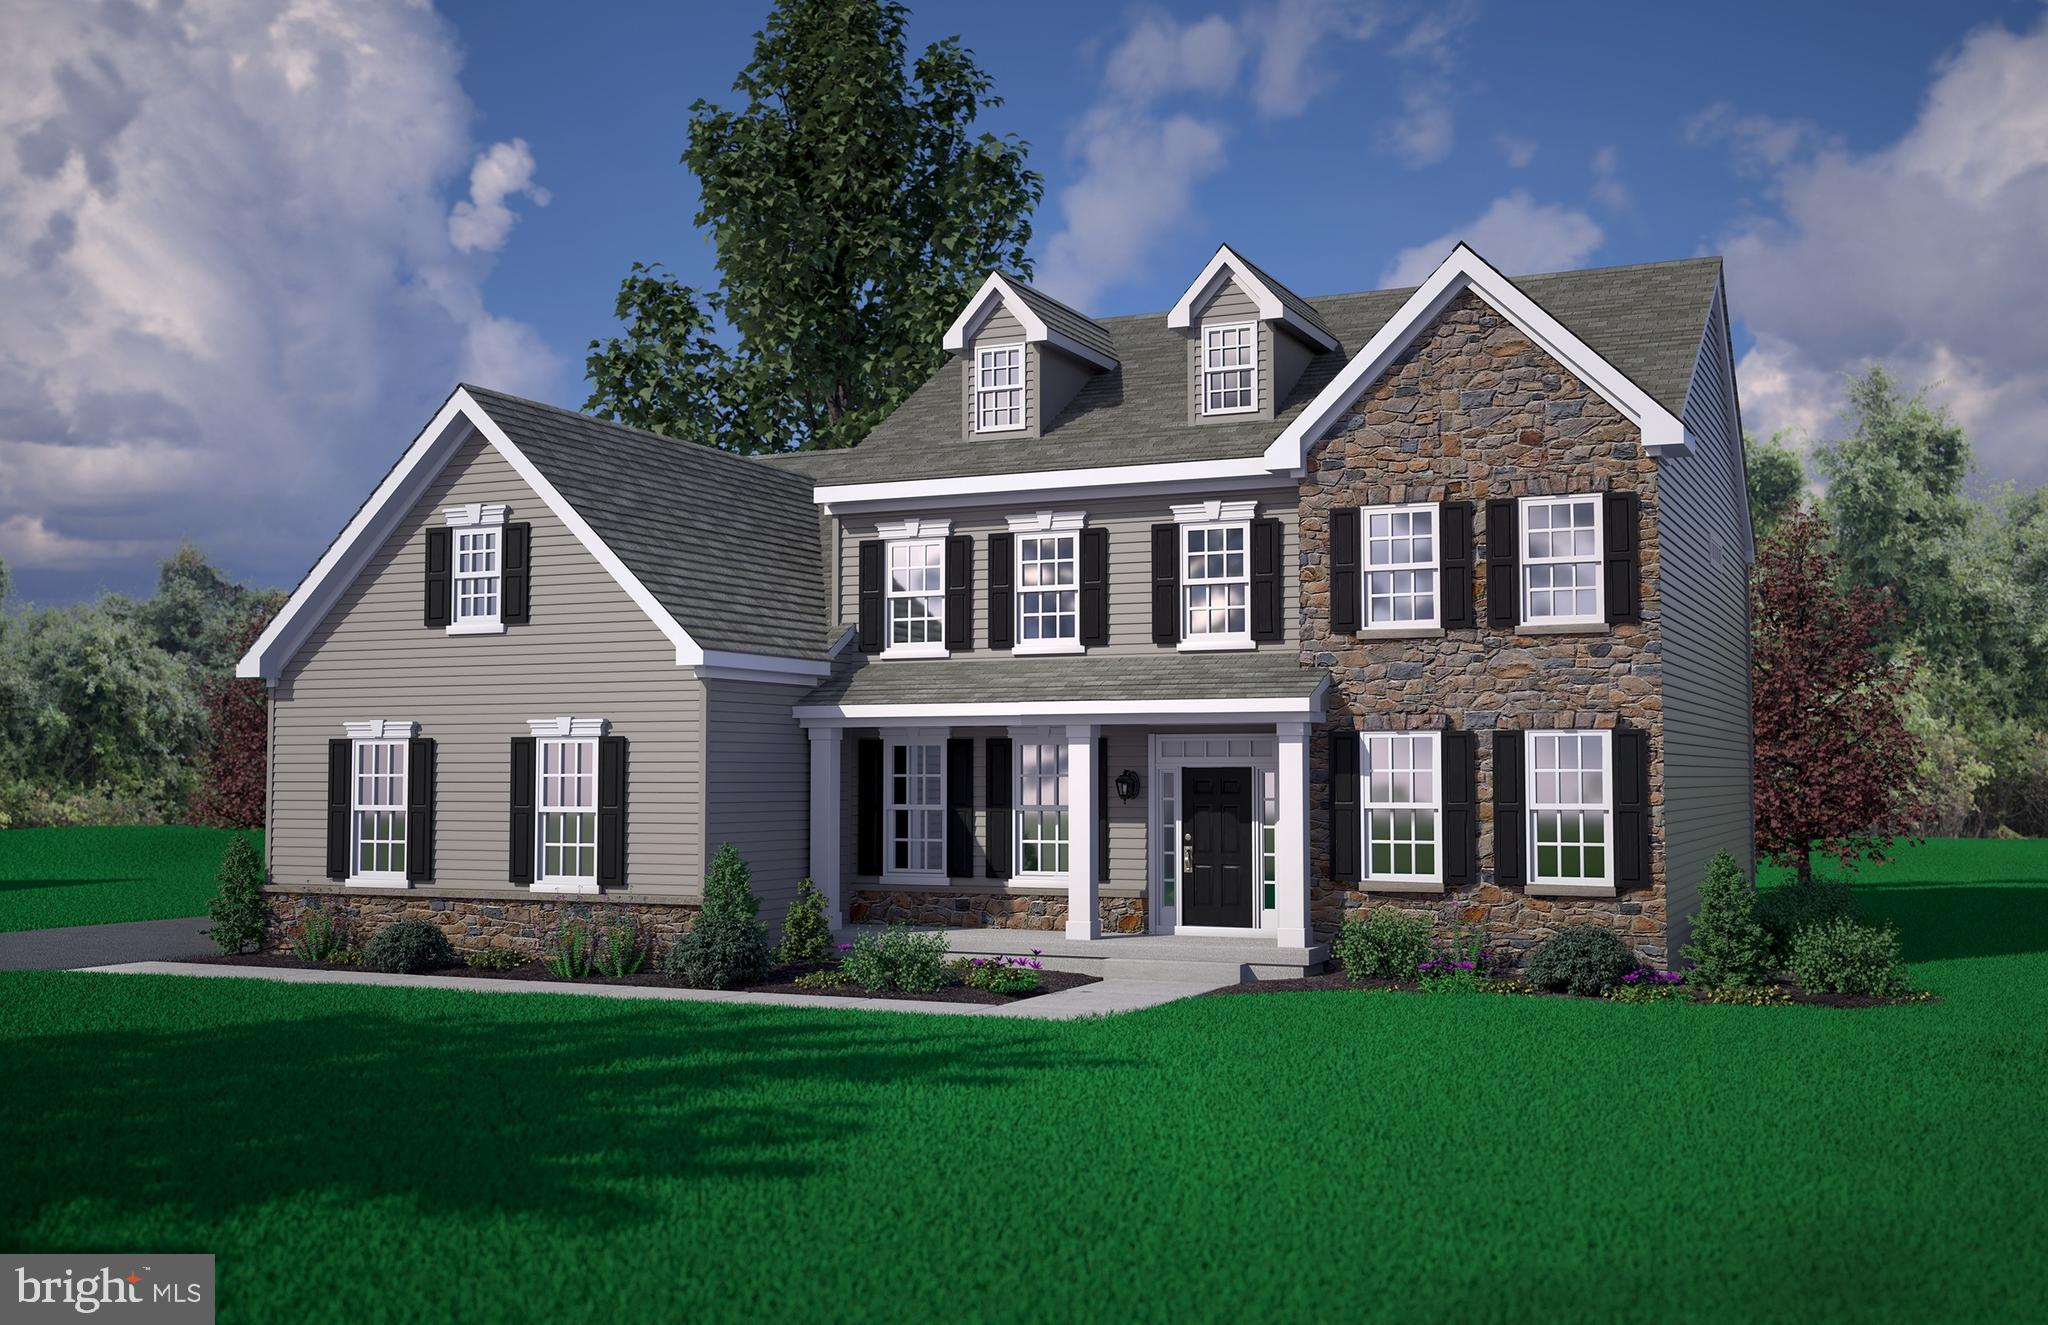 The Bristol Country on homesite #18 featuring 4 bedrooms, 2.5 baths,  2.5 car garage, fireplace and second walk-in closet at the Owner's Suite. *Sample artist renderings shown.